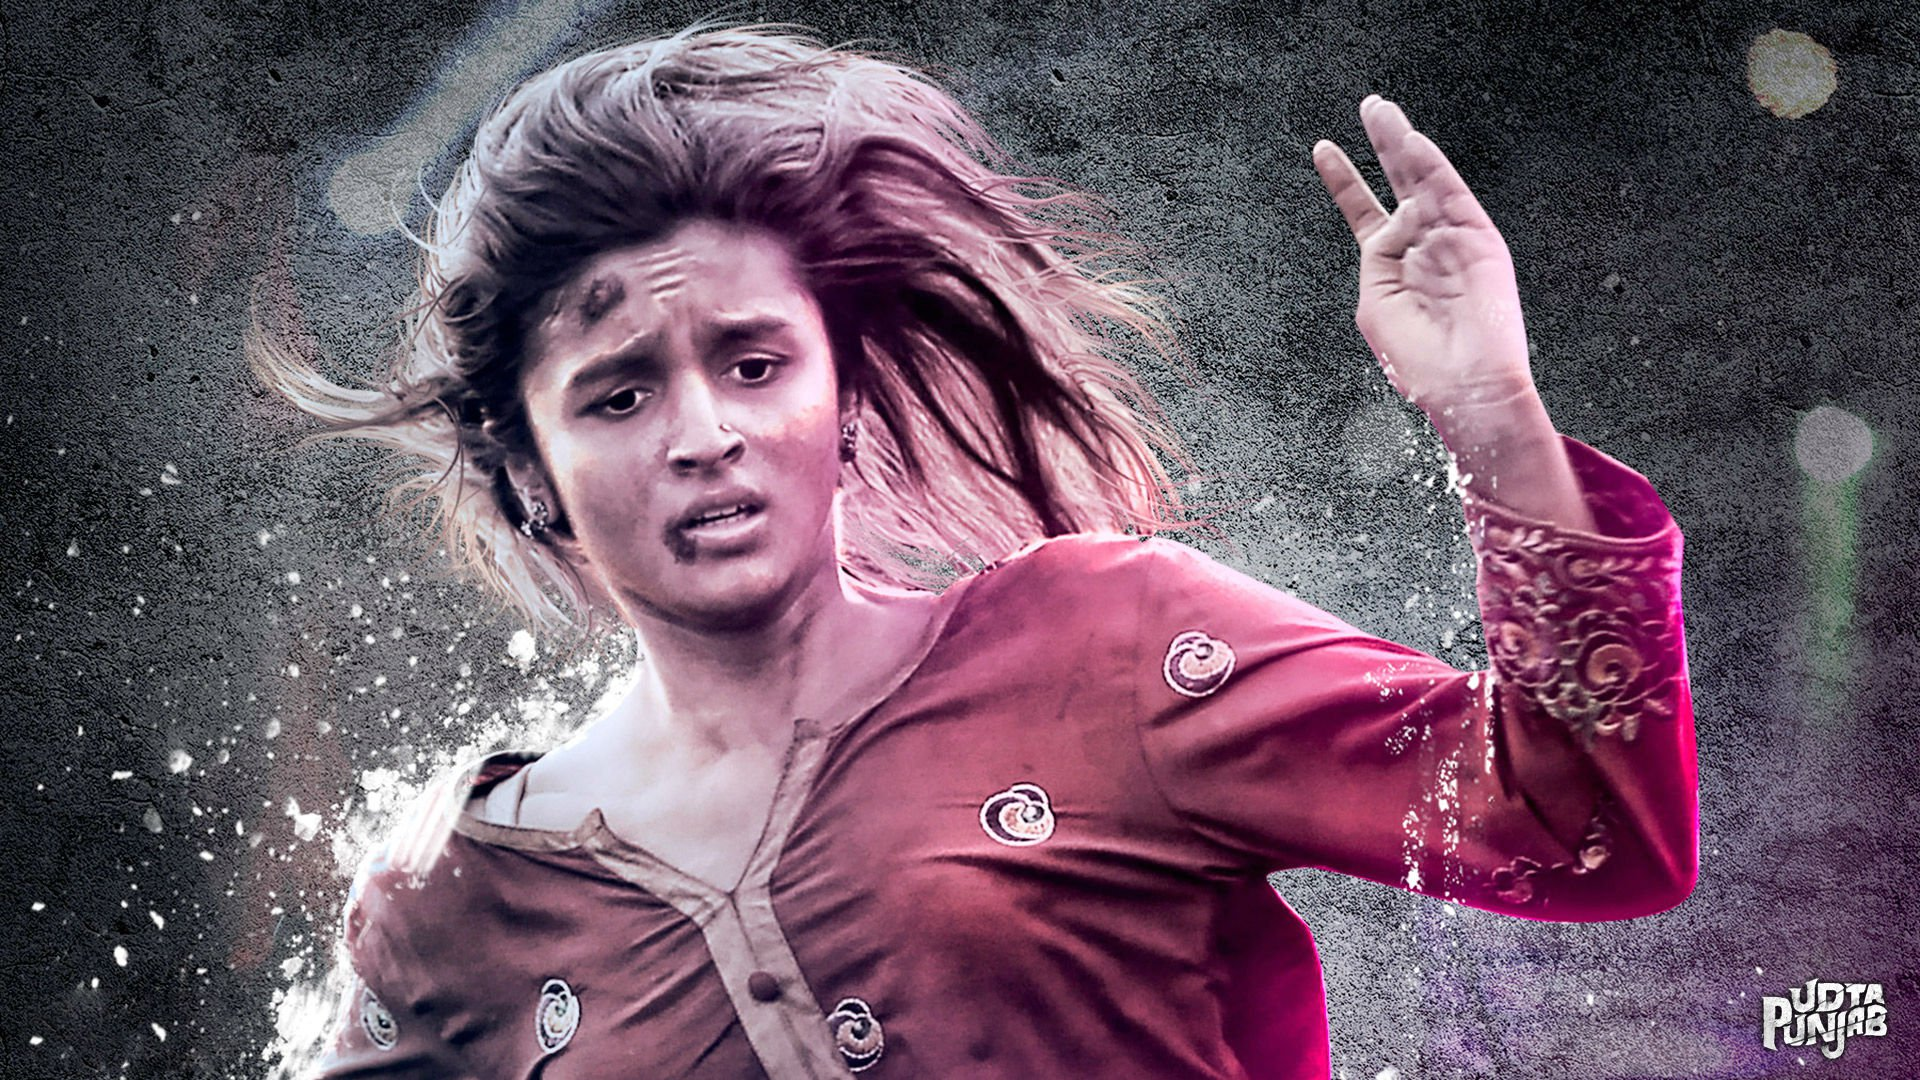 Alia Bhatt's performance as Bihari immigrant, caught in trying circumstances in Punjab, was one of the highs of the film